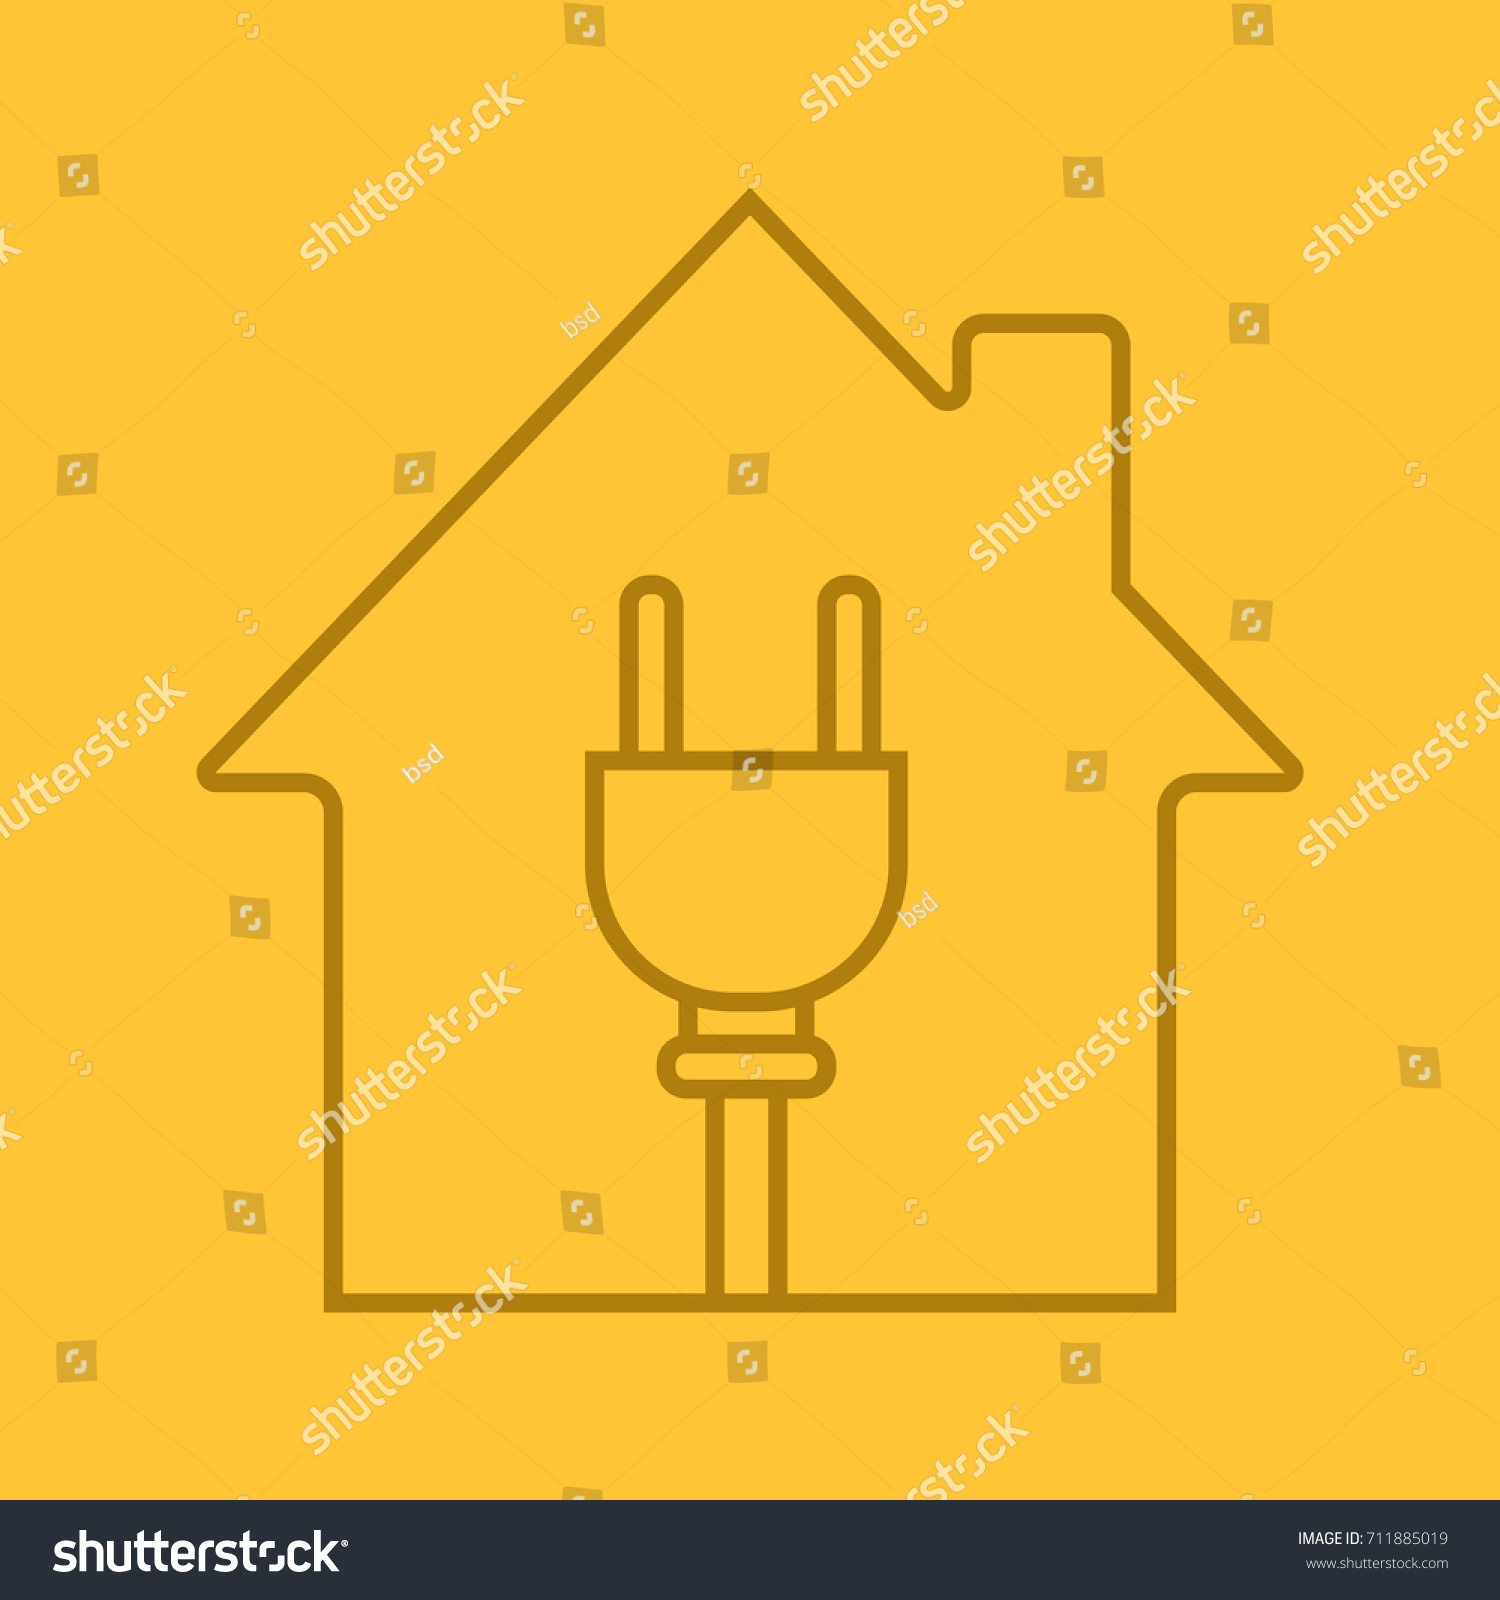 House Wire Plug Inside Linear Icon Stock Illustration 711885019 Home Wiring With Electric Utilities Electrification Thin Line